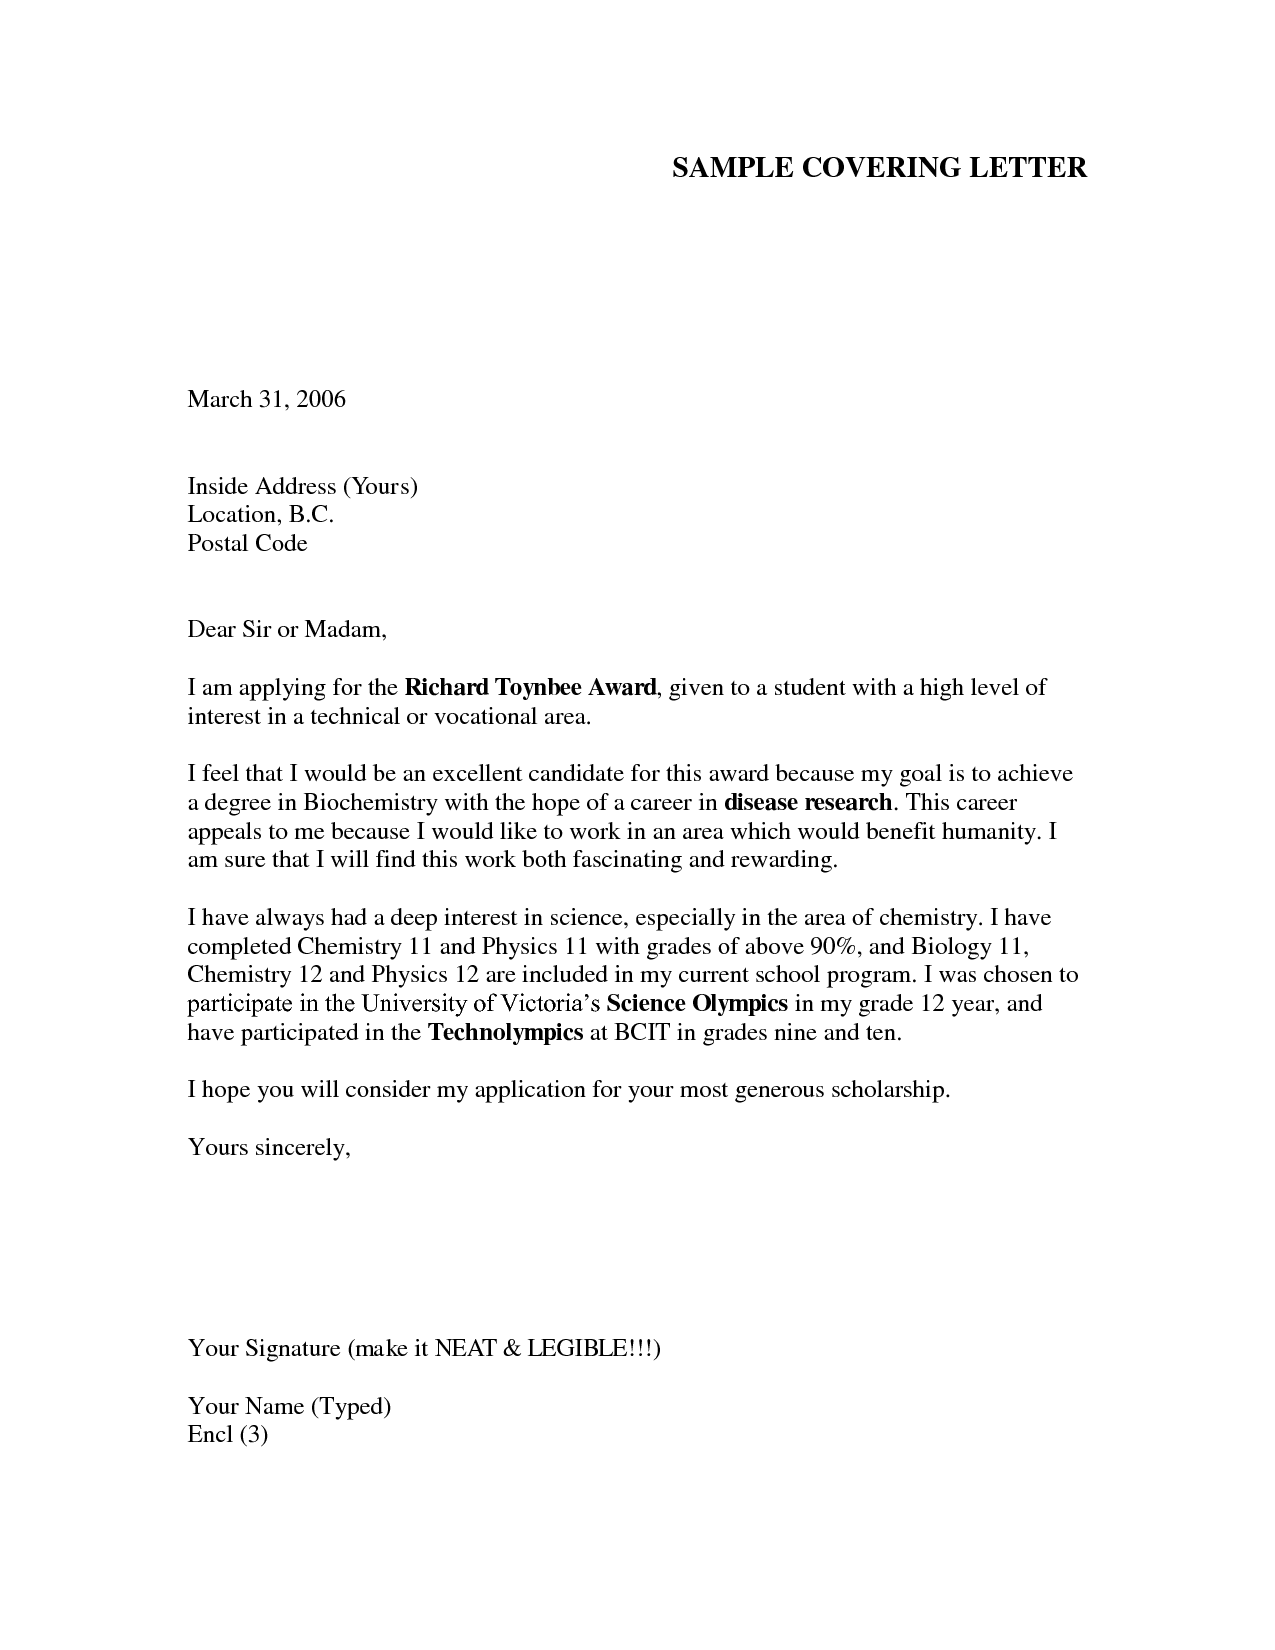 Awesome Job Cover Letter Examples To Cover Letter Example For Job Application